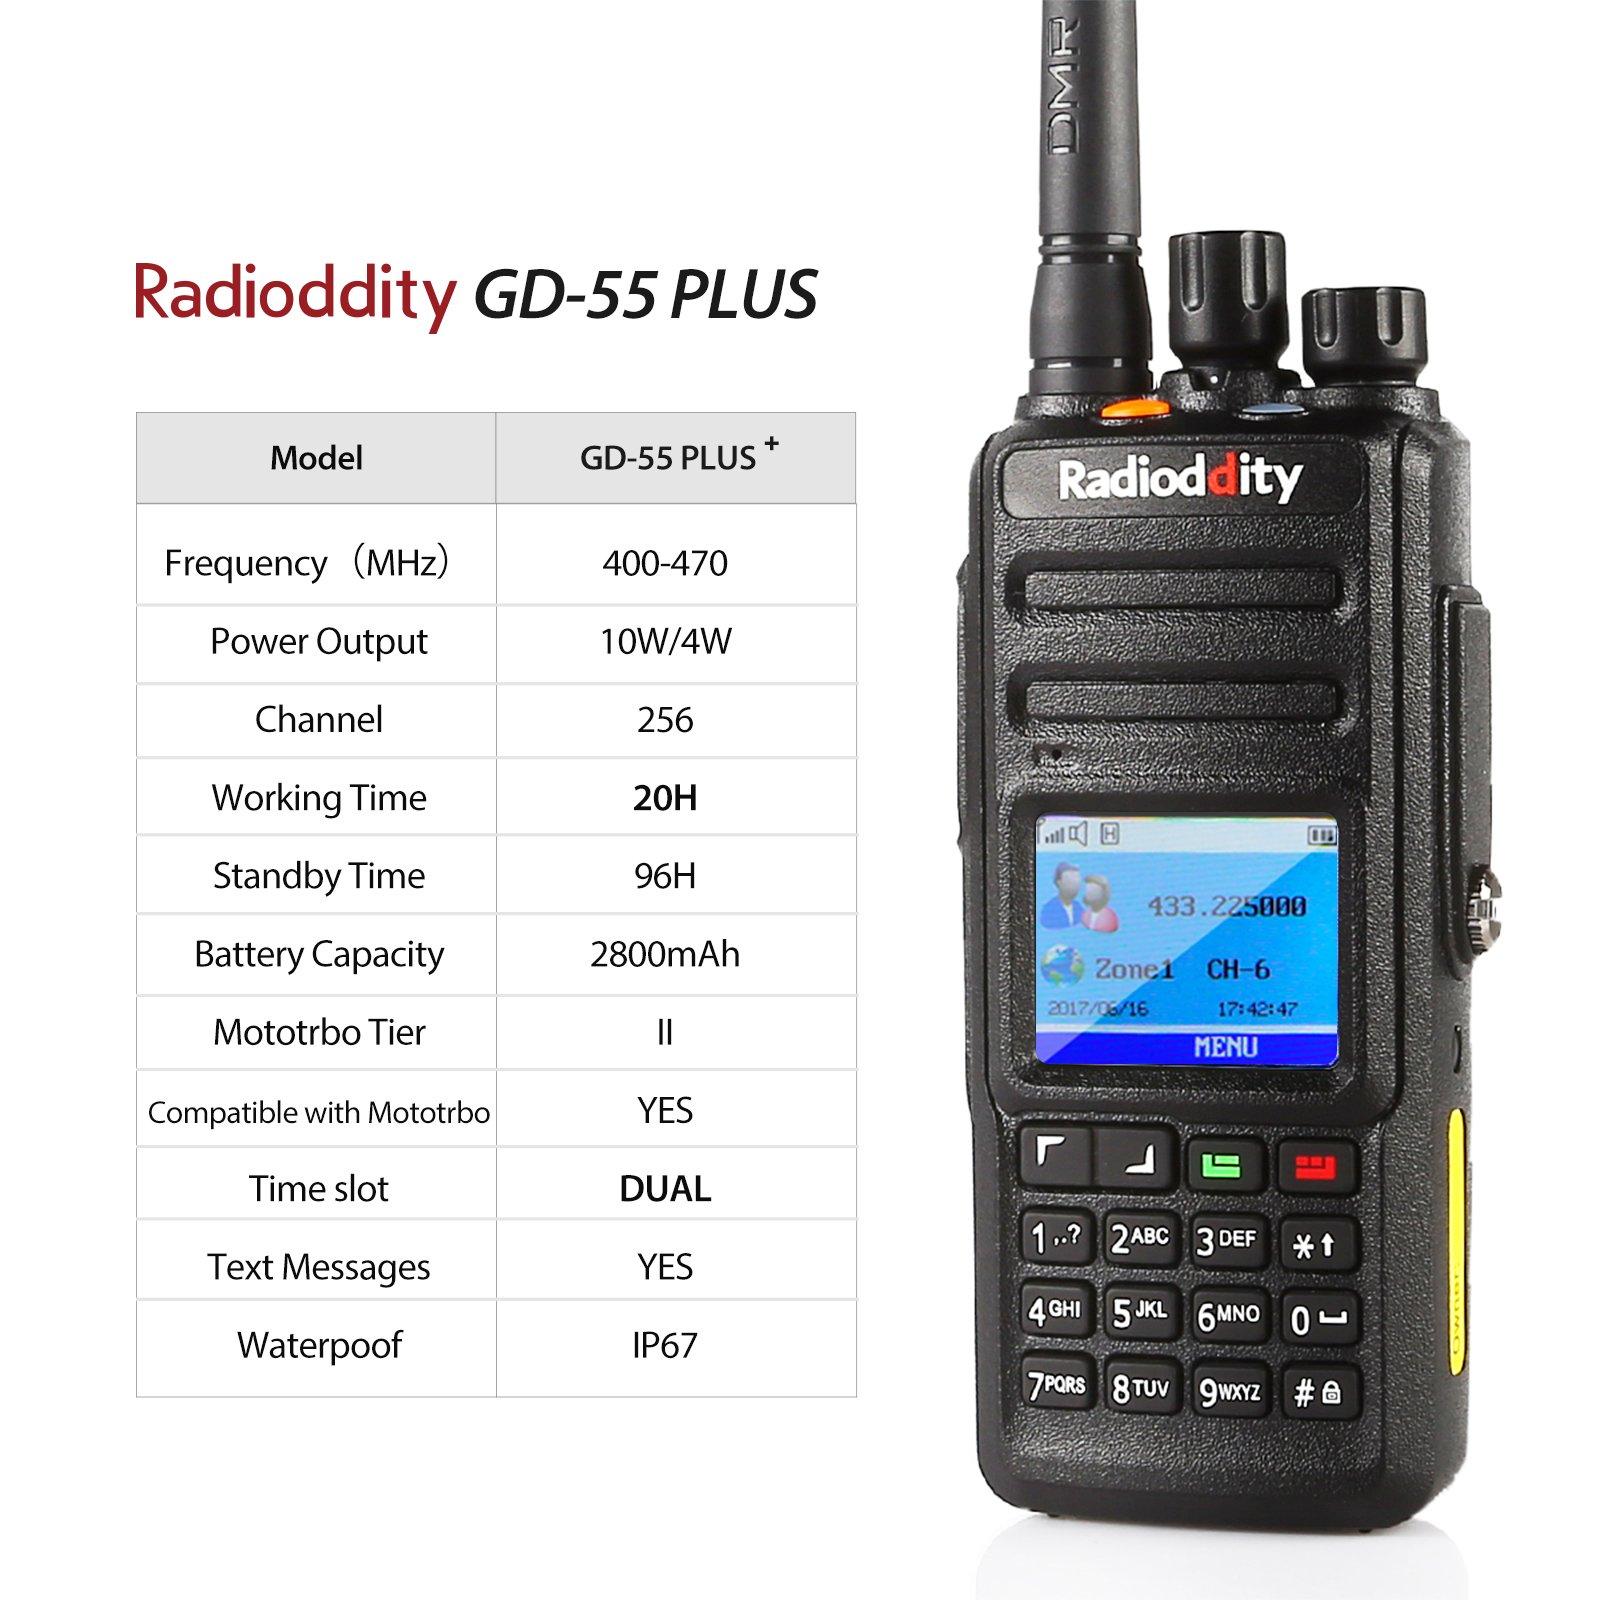 Radioddity GD-55 Plus 10W IP67 Waterproof UHF 400-470MHz 256CH 2800mAh DMR Digital Two Way Radio Ham Radio Compatible with Mototrbo Dual Time Slot, with Free Programming Cable and 2 Antennas by Radioddity (Image #5)